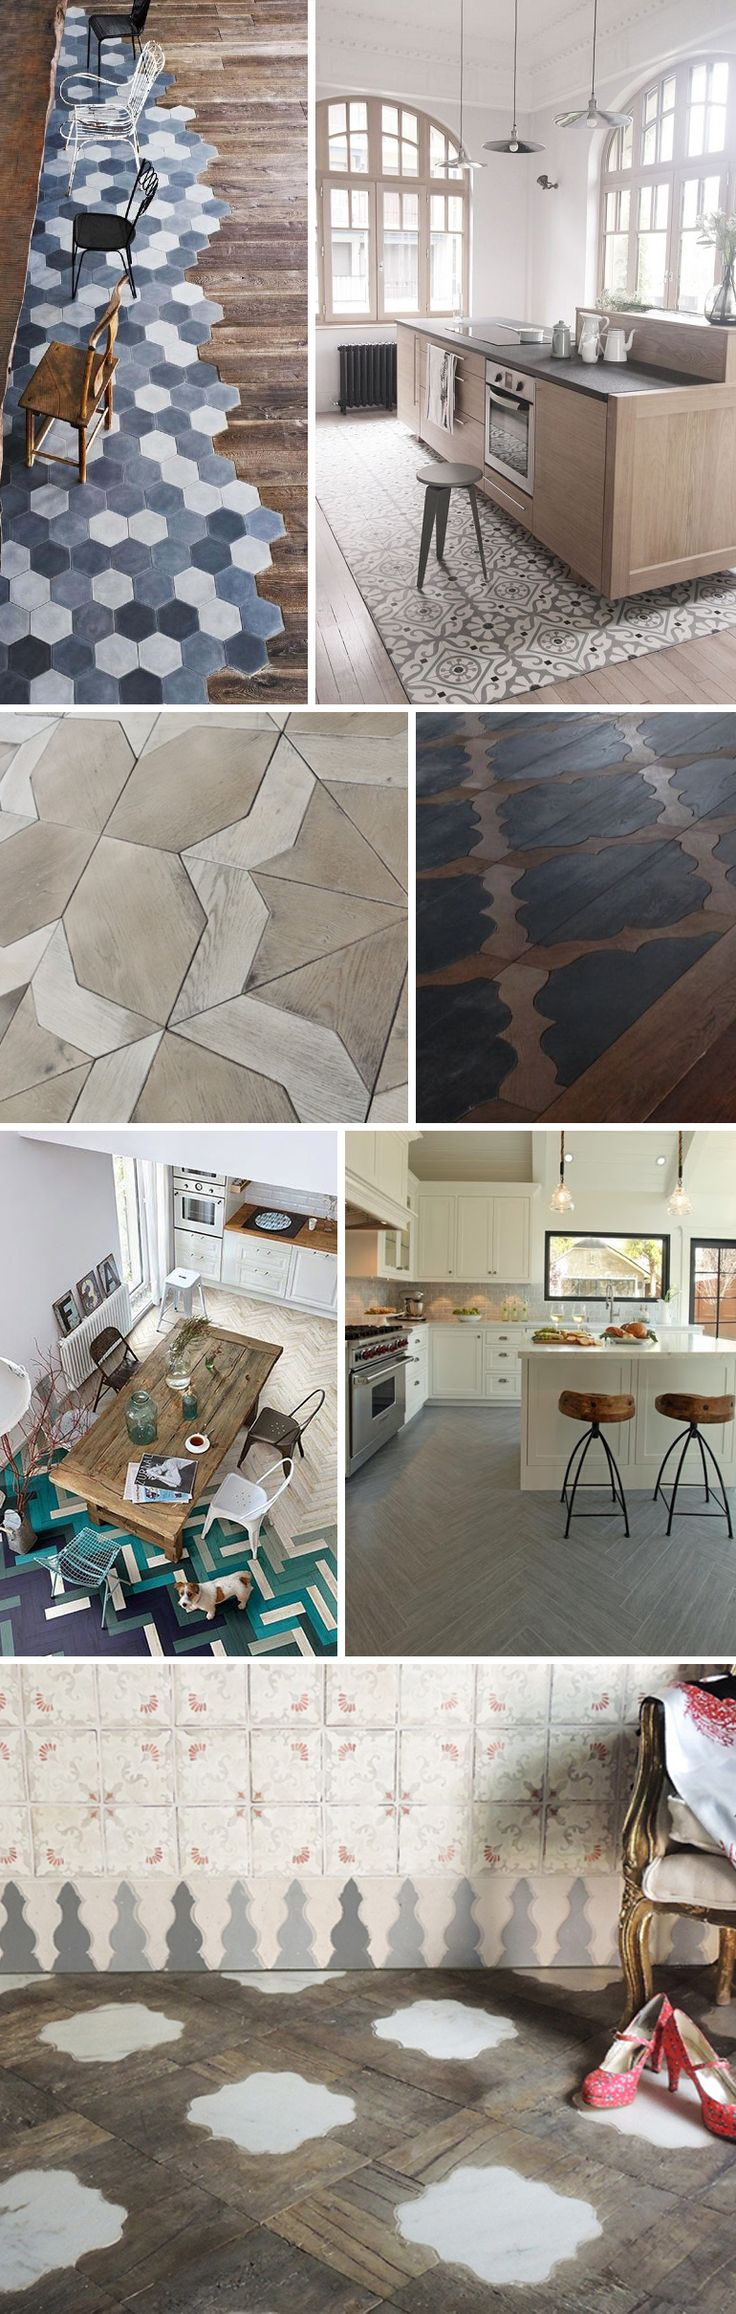 Zenati & Edri Wood parquet can be seen on Eve Weinsheimer's A Day In May blog. Thank you for including us in your feature!